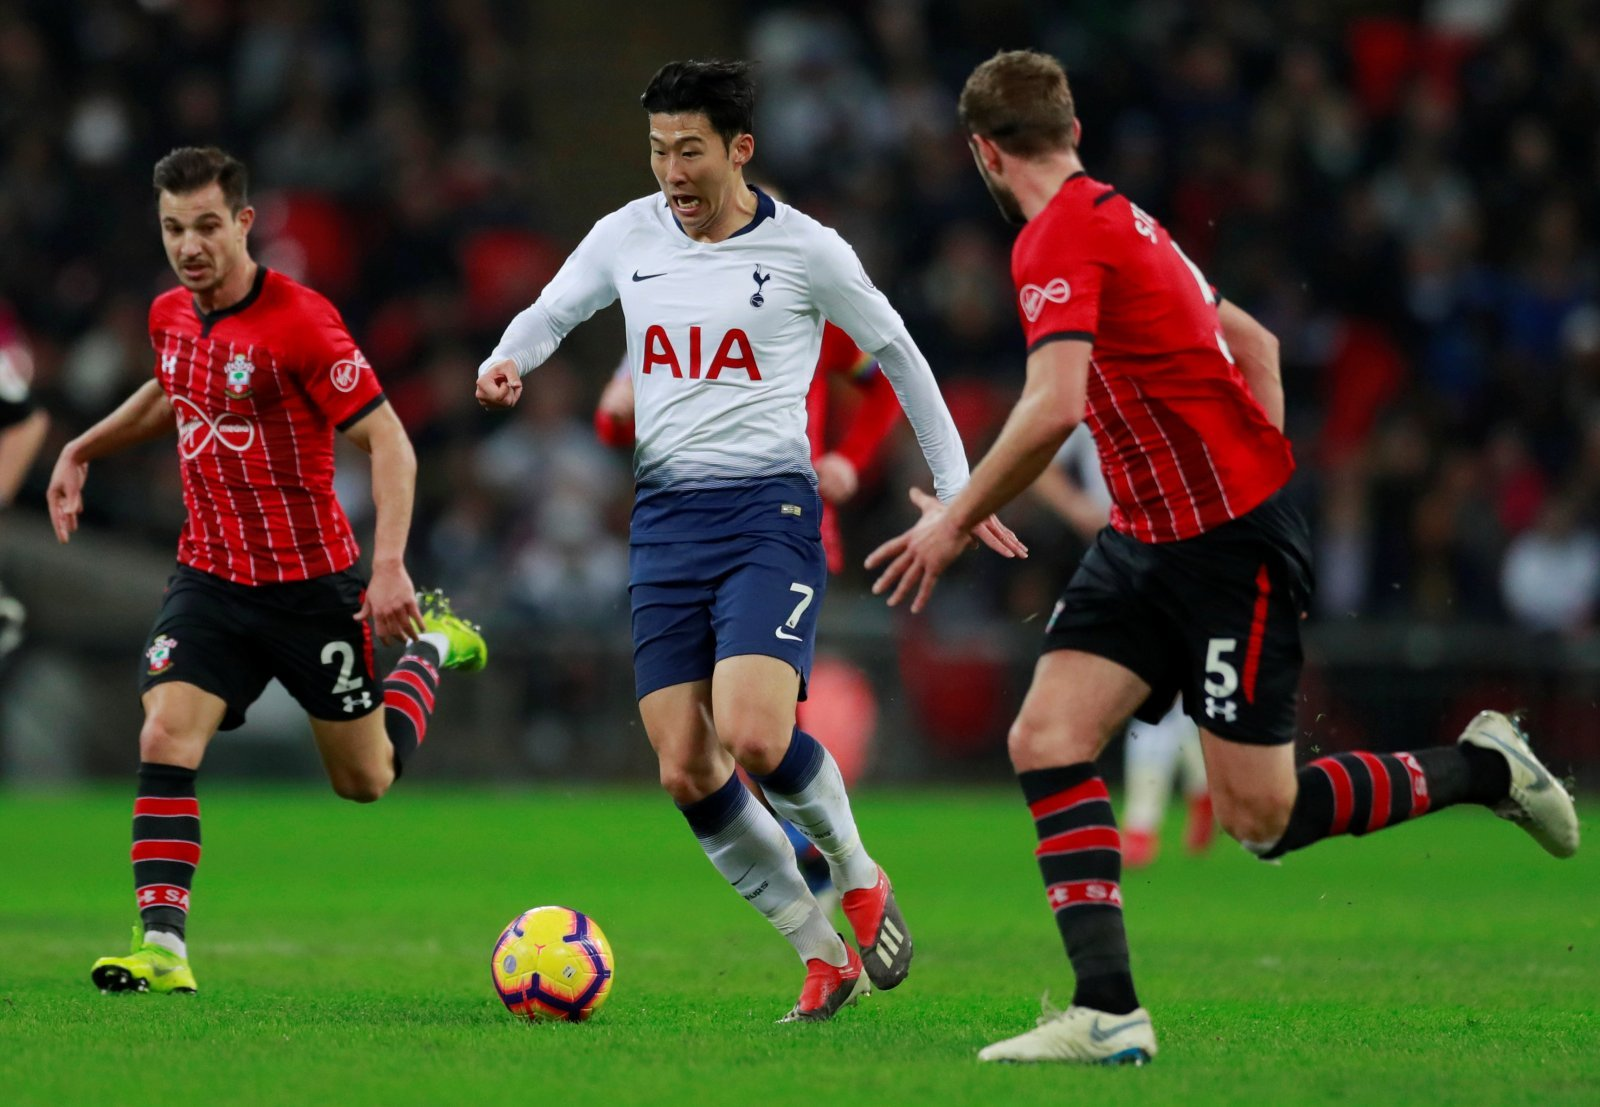 Introducing: The Premier League's most underrated forward, Son Heung-min